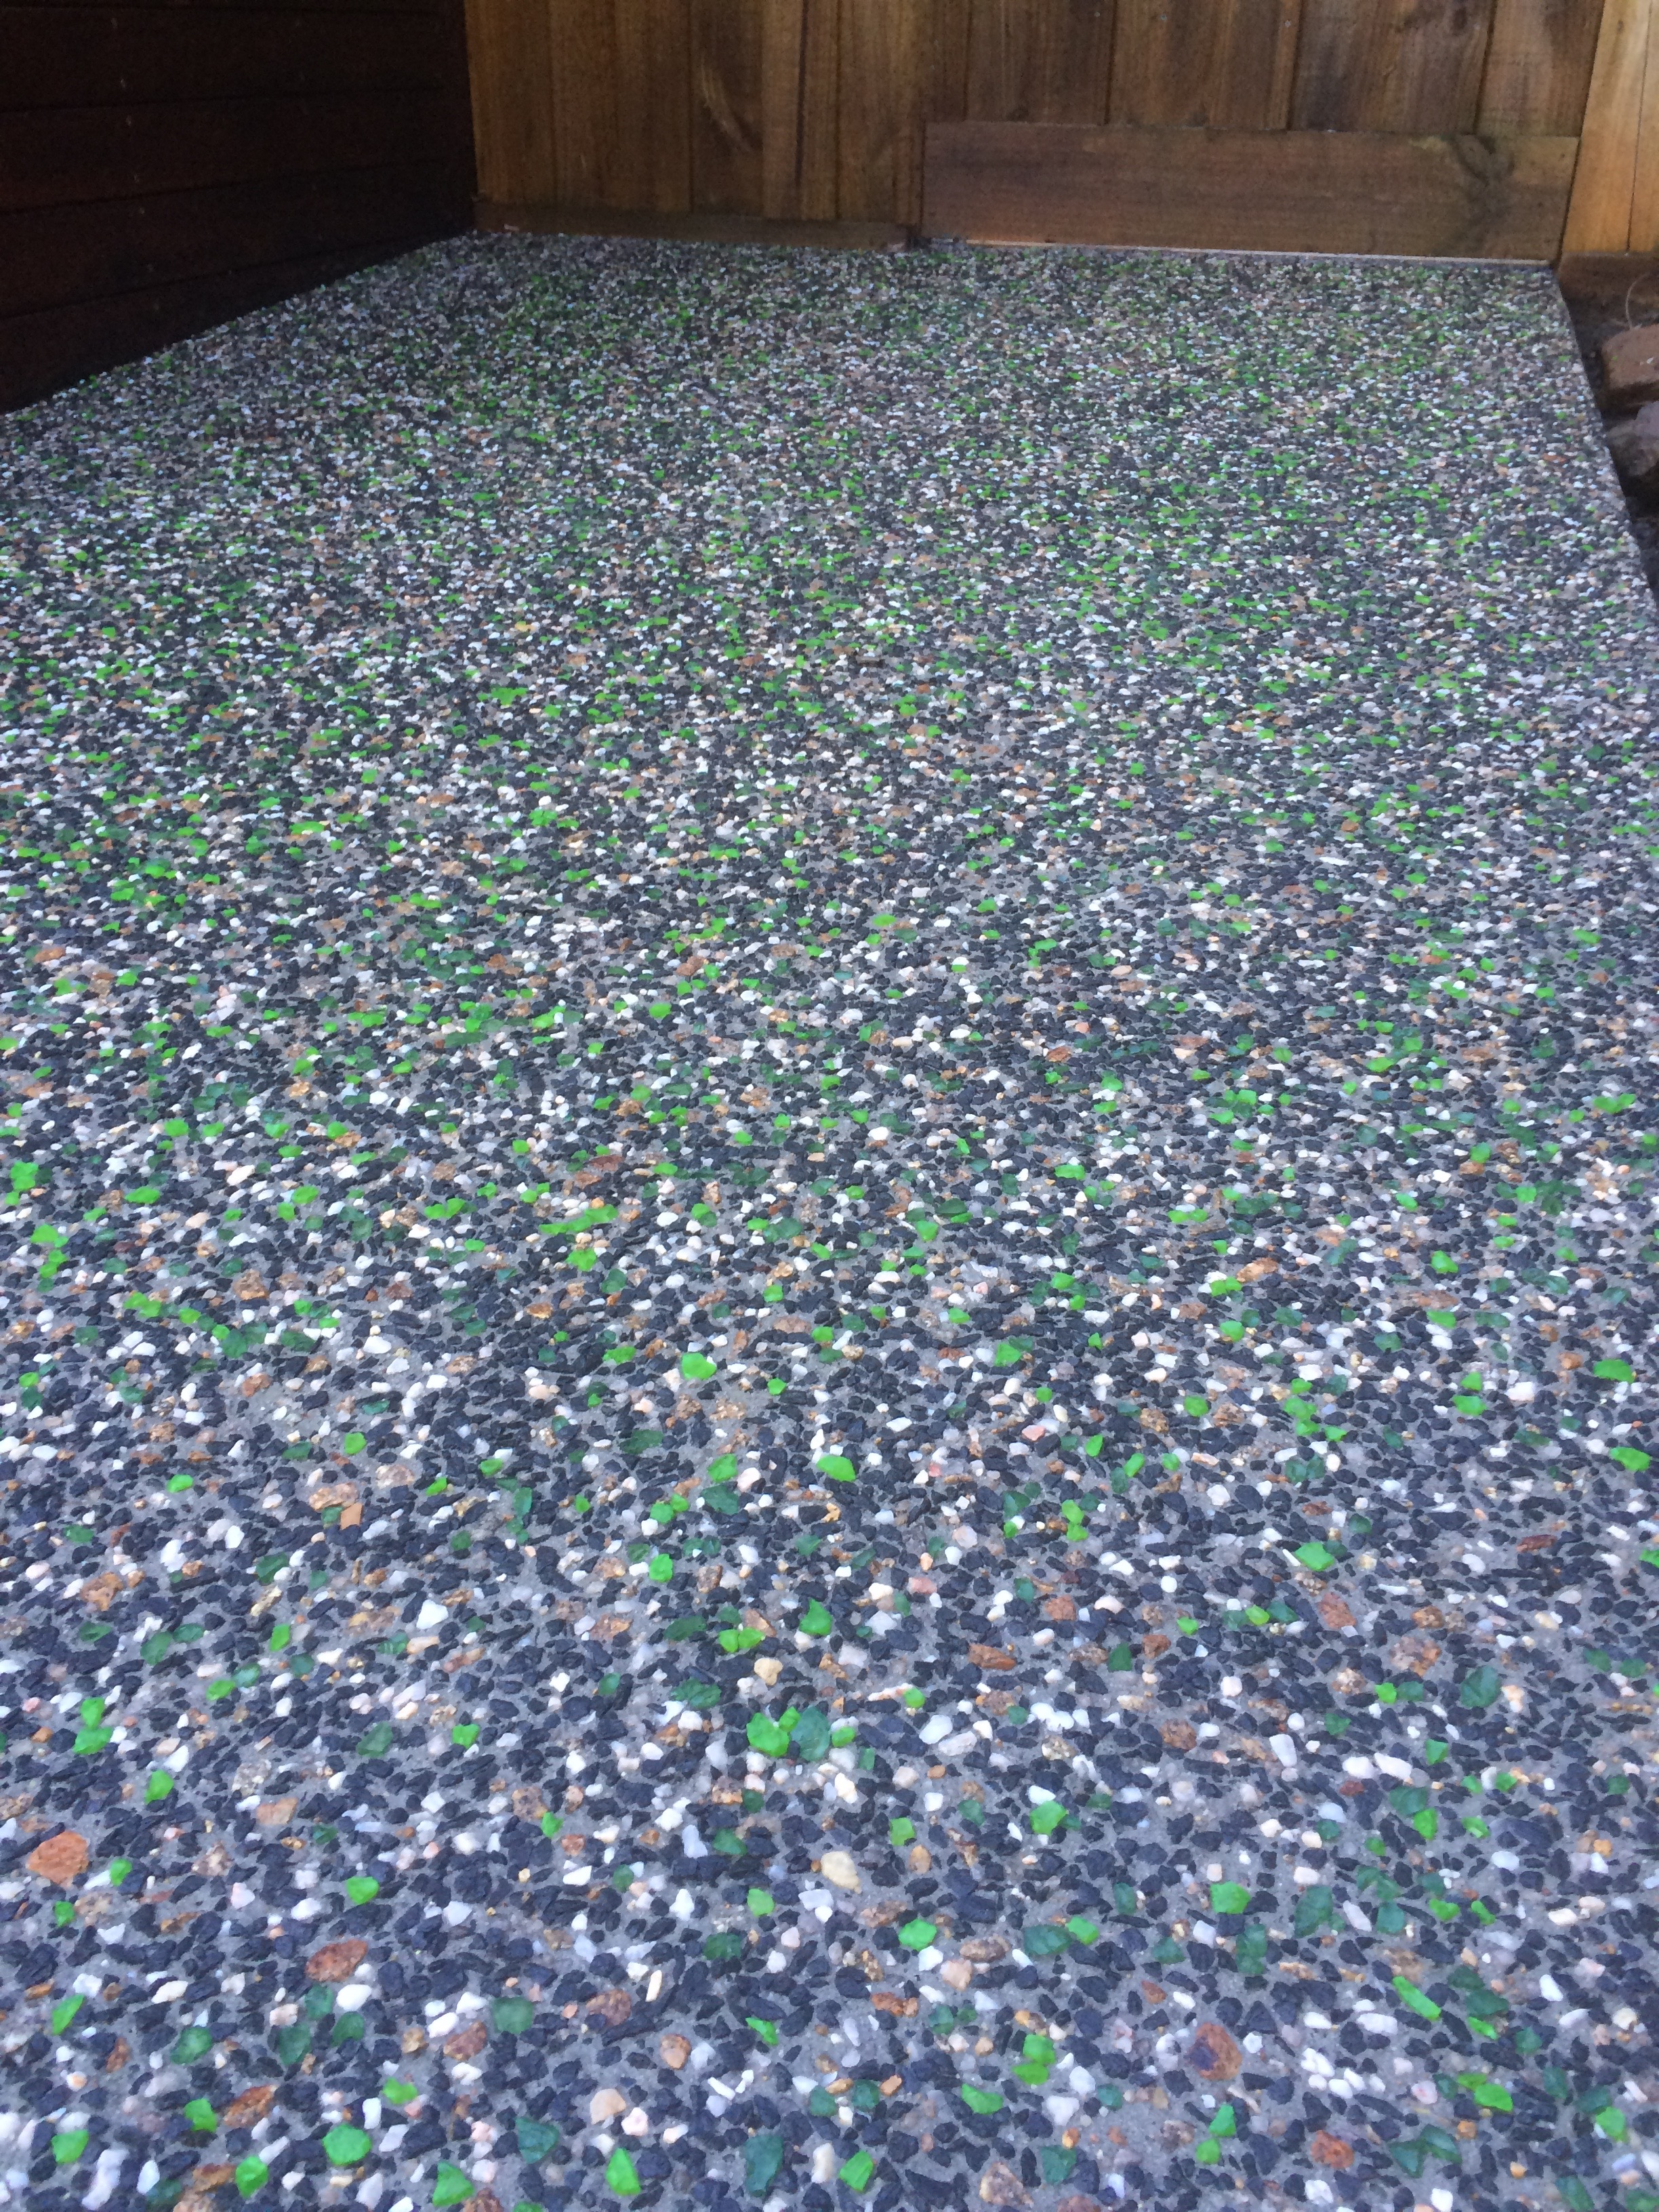 Glass Concrete Aggregate - Schneppa Recycled Crushed Glass |Glass Aggregate